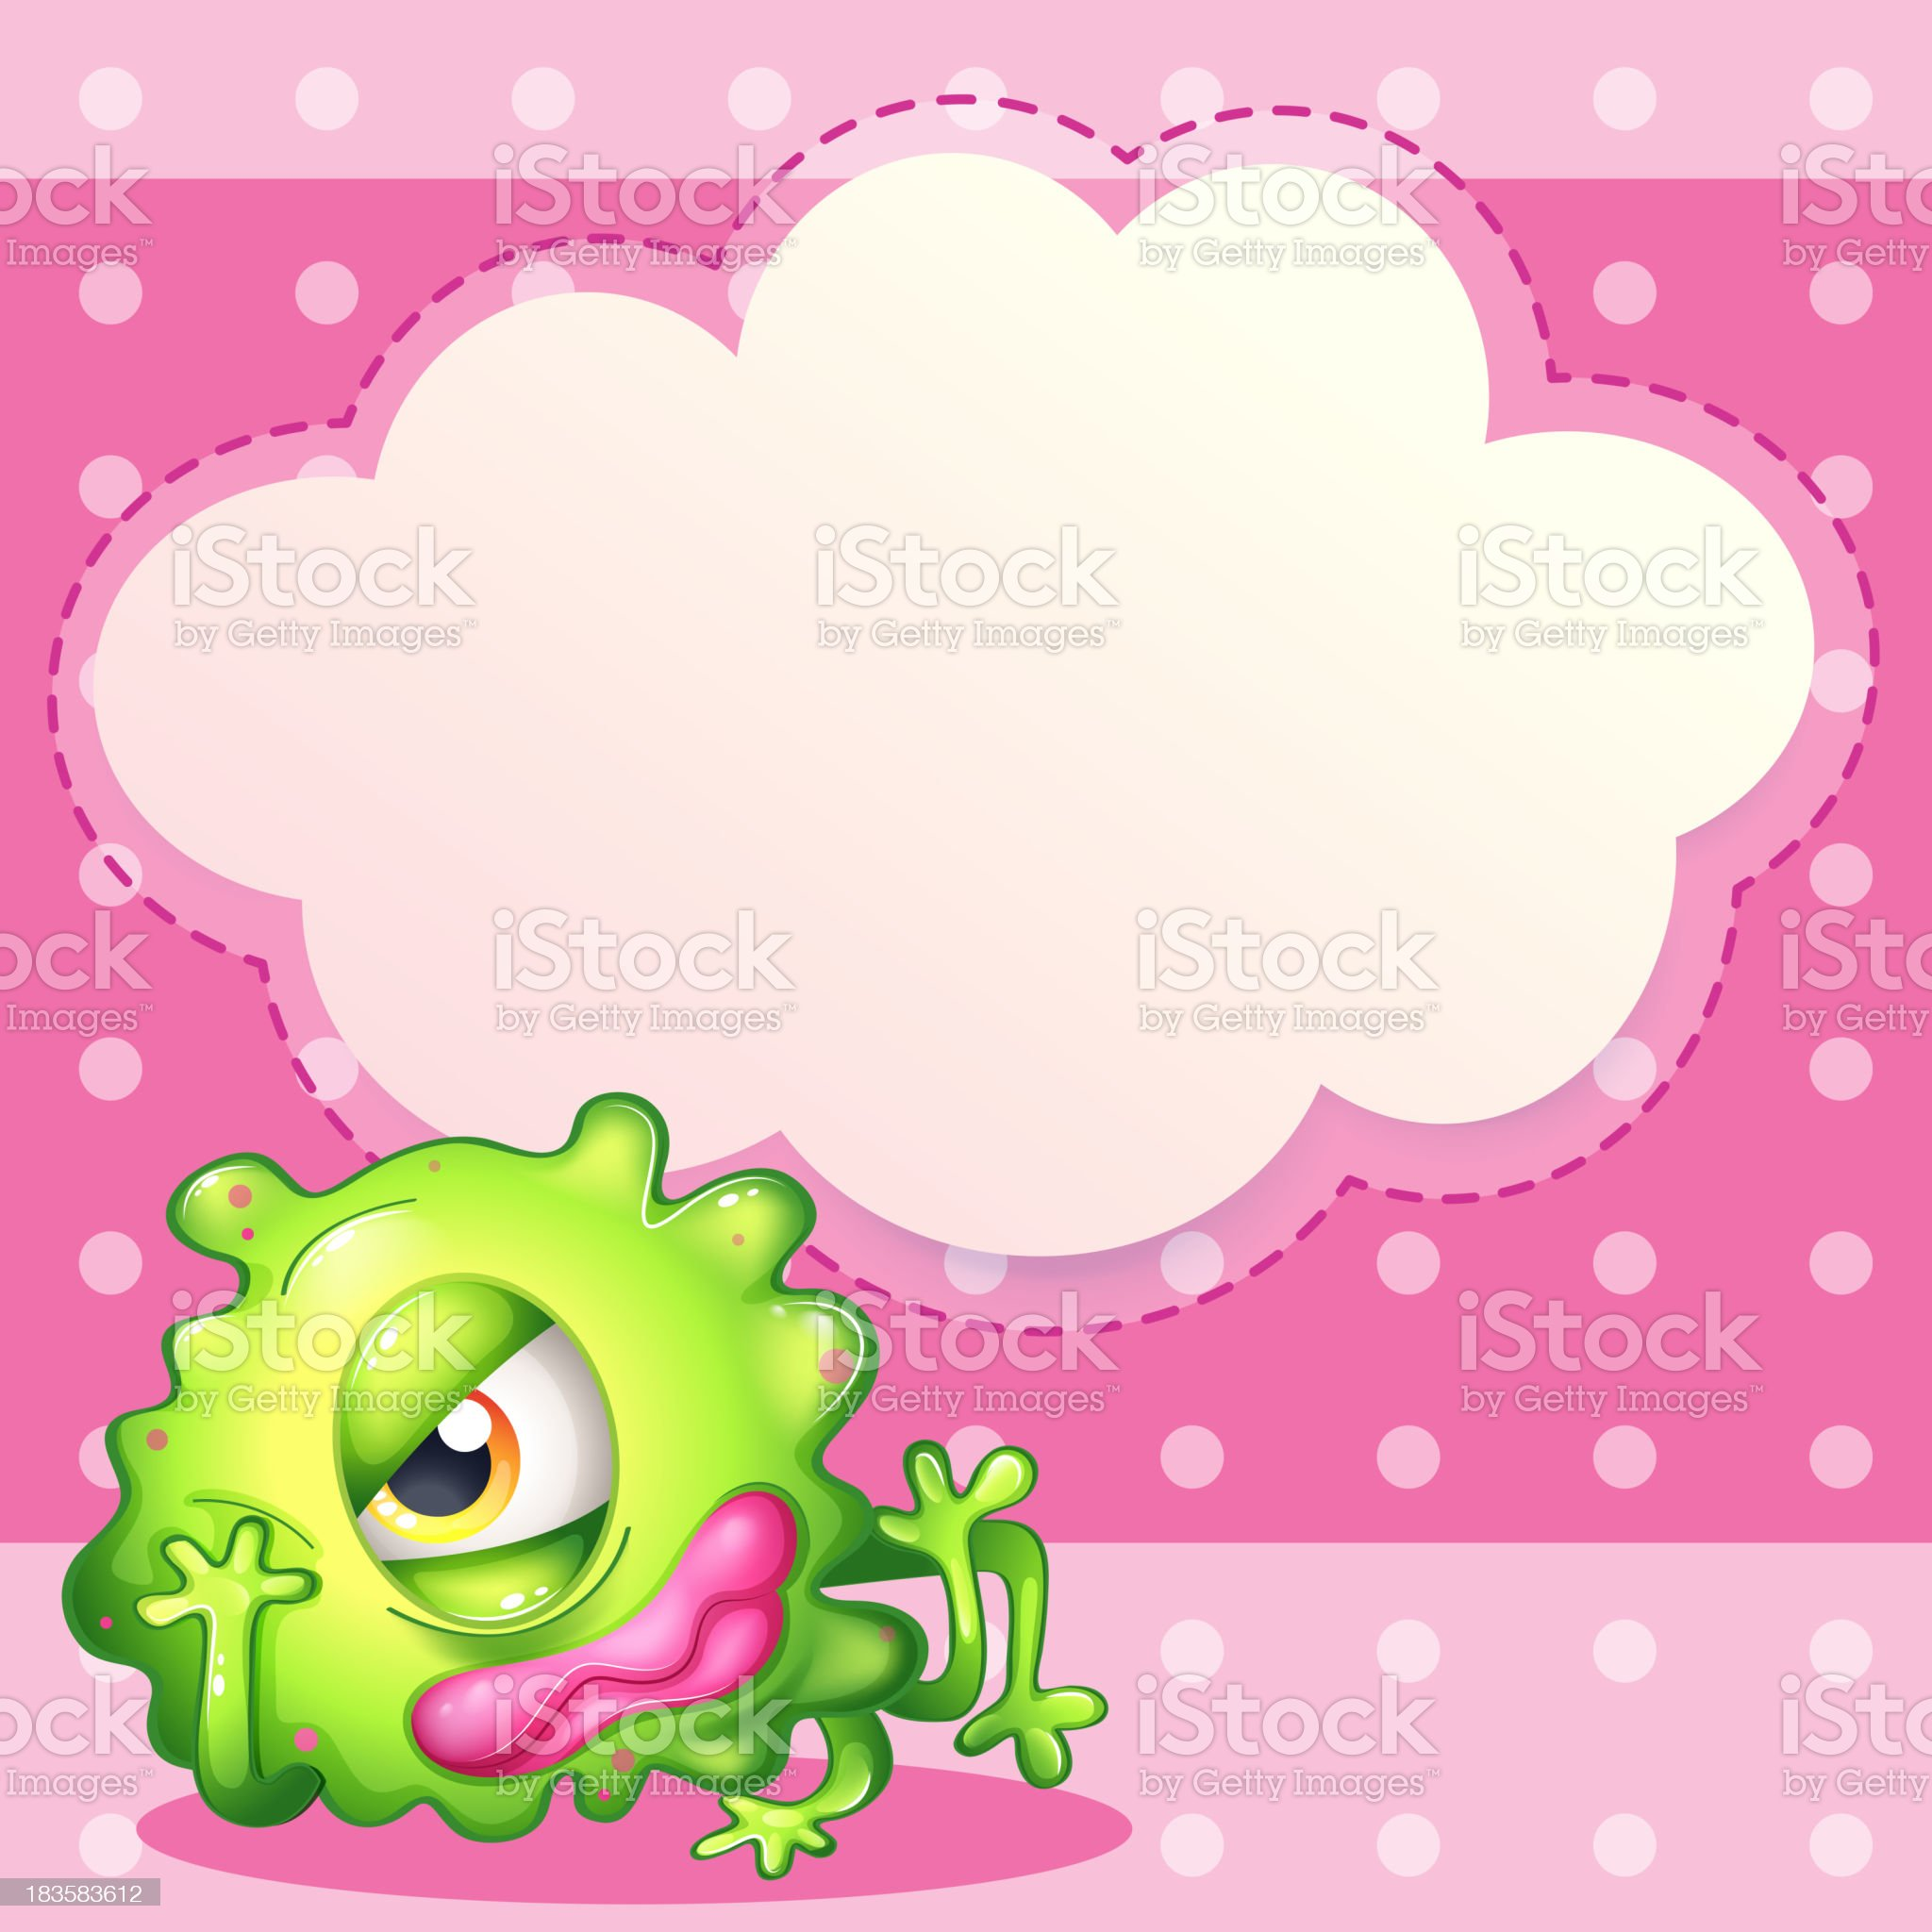 empty cloud template at the back of a green monster royalty-free stock vector art